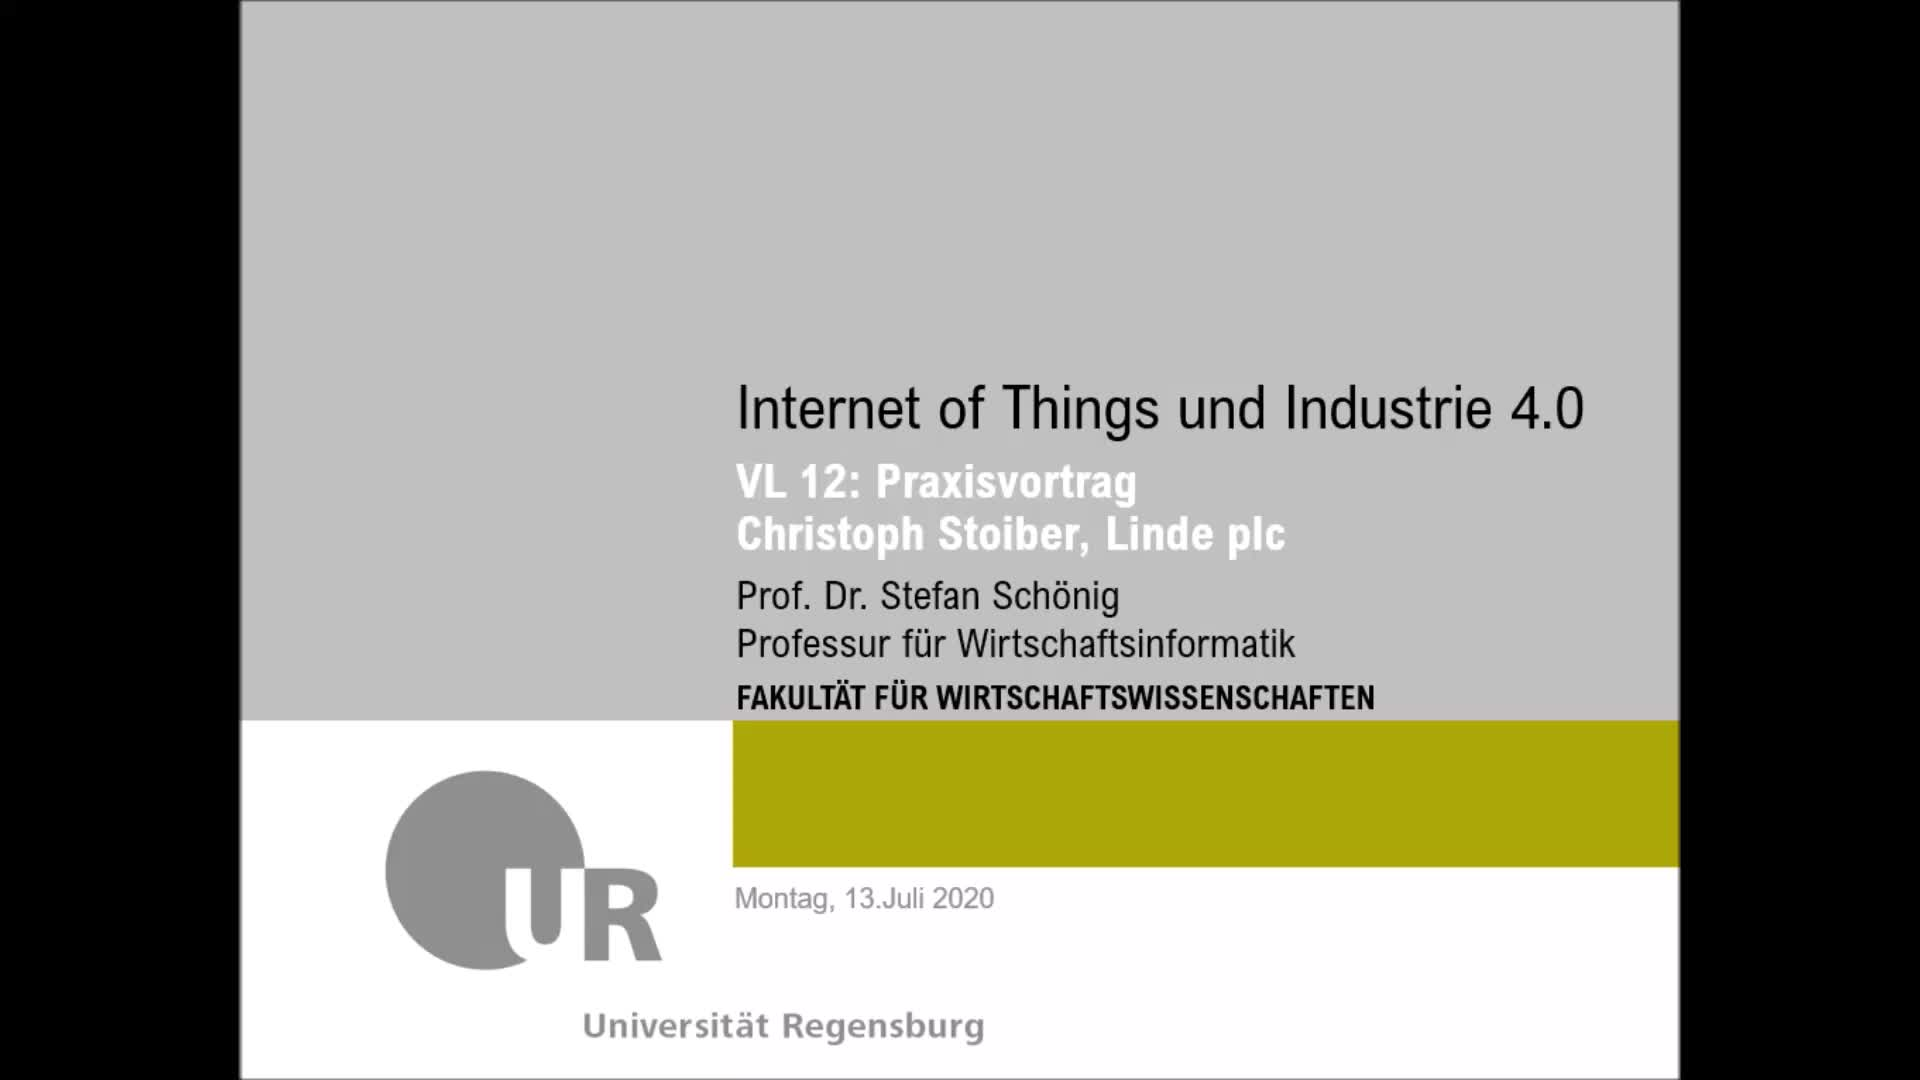 SS 2020 - Internet of Things und Industrie 4.0 - Kapitel 12 (Praxisvortrag)